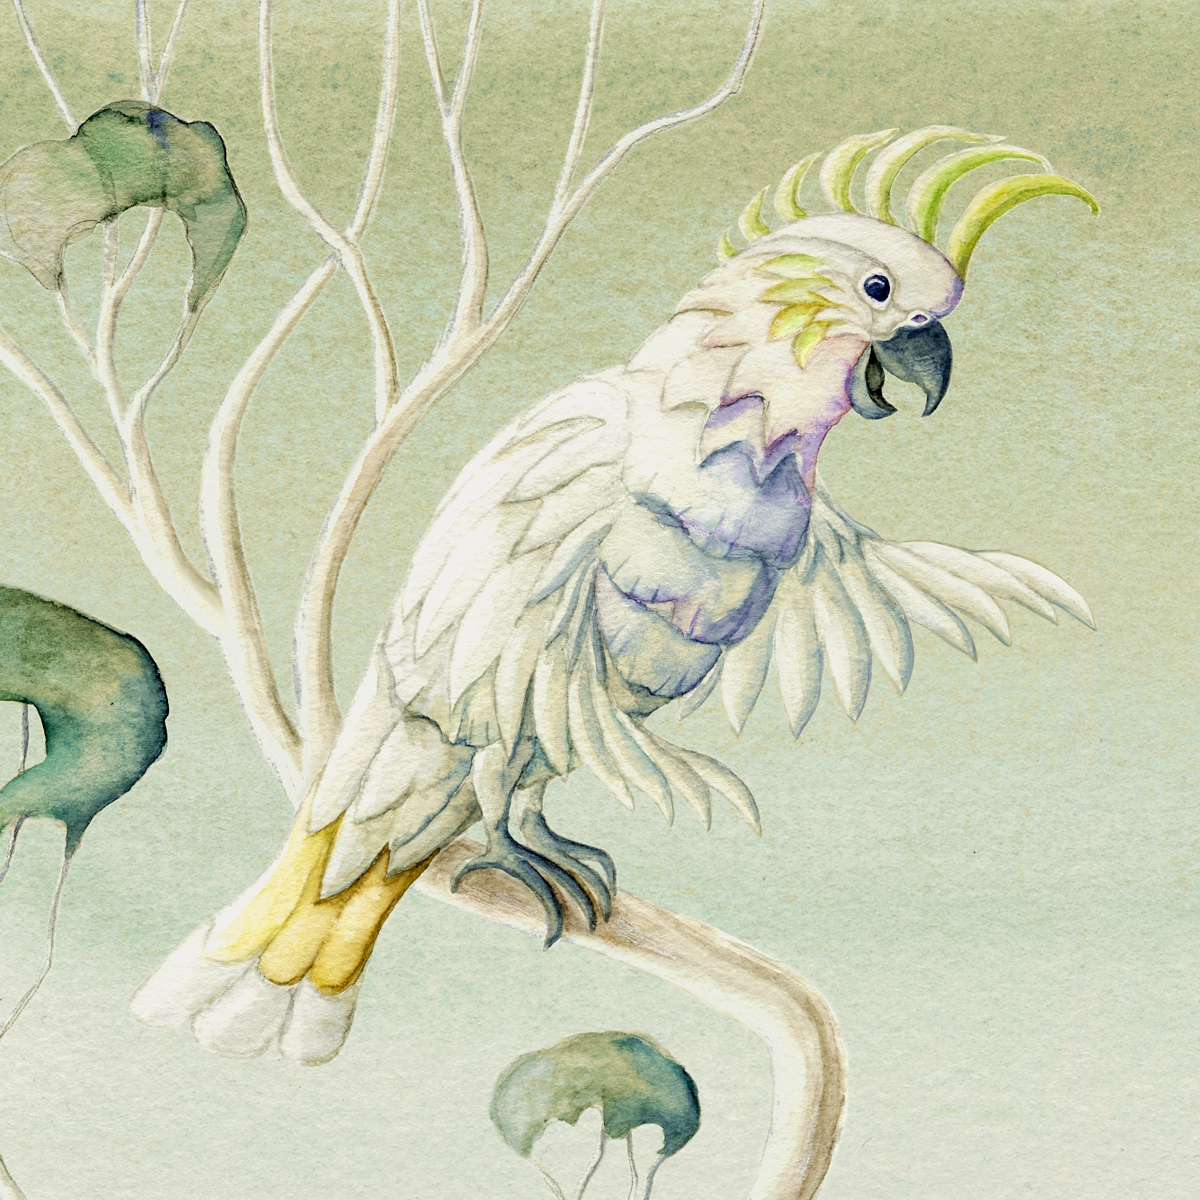 Cockatoo illustration